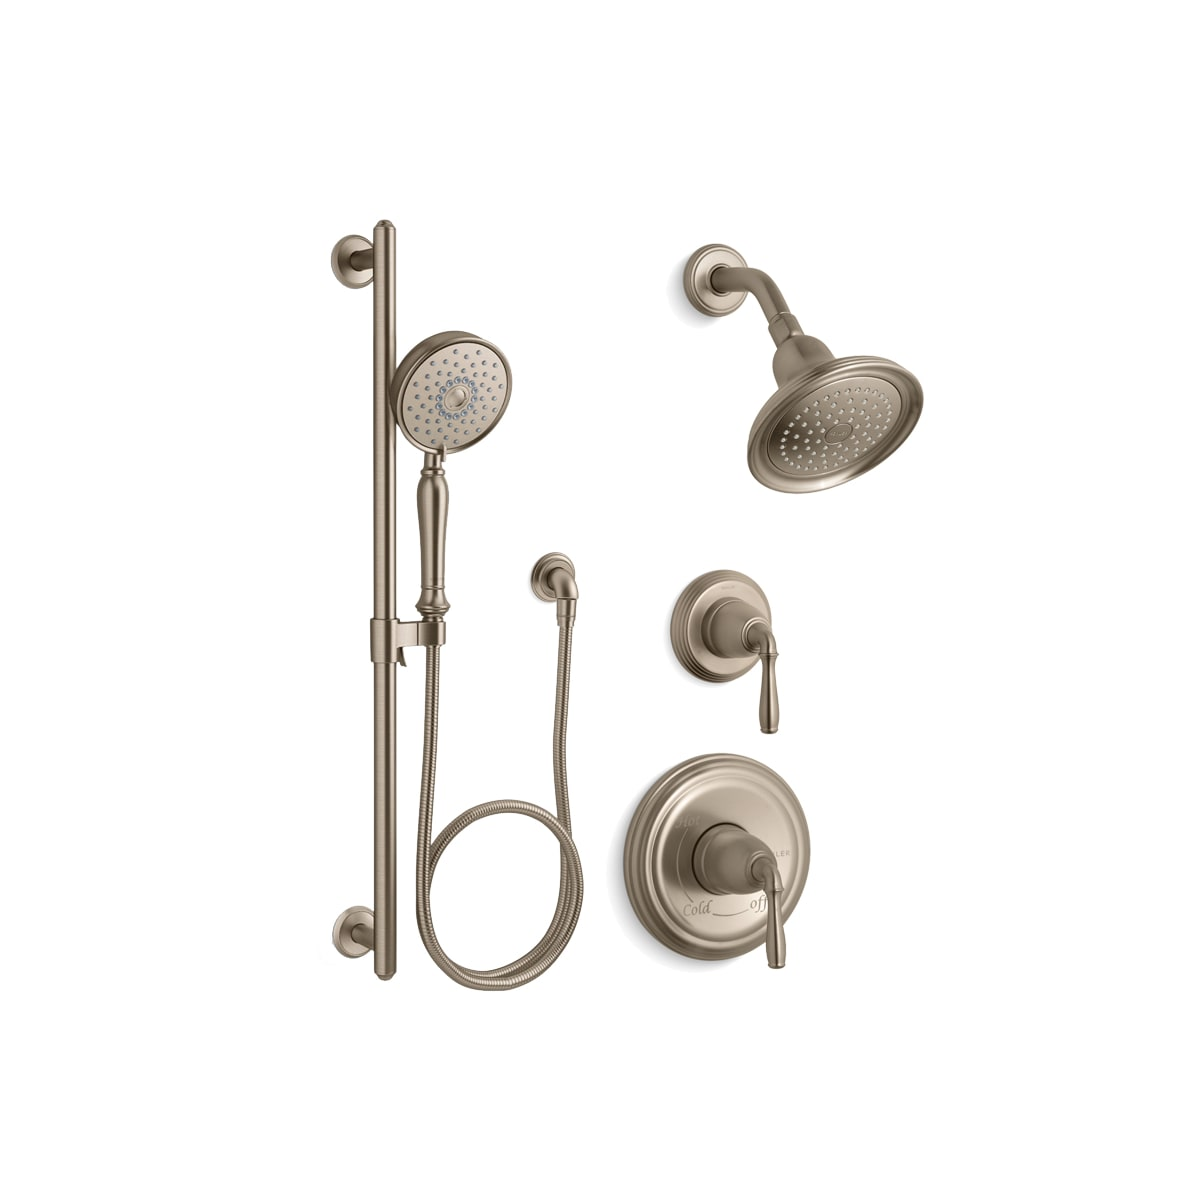 Kohler Kss Devonshire 4 Rths Brz Oil Rubbed Bronze